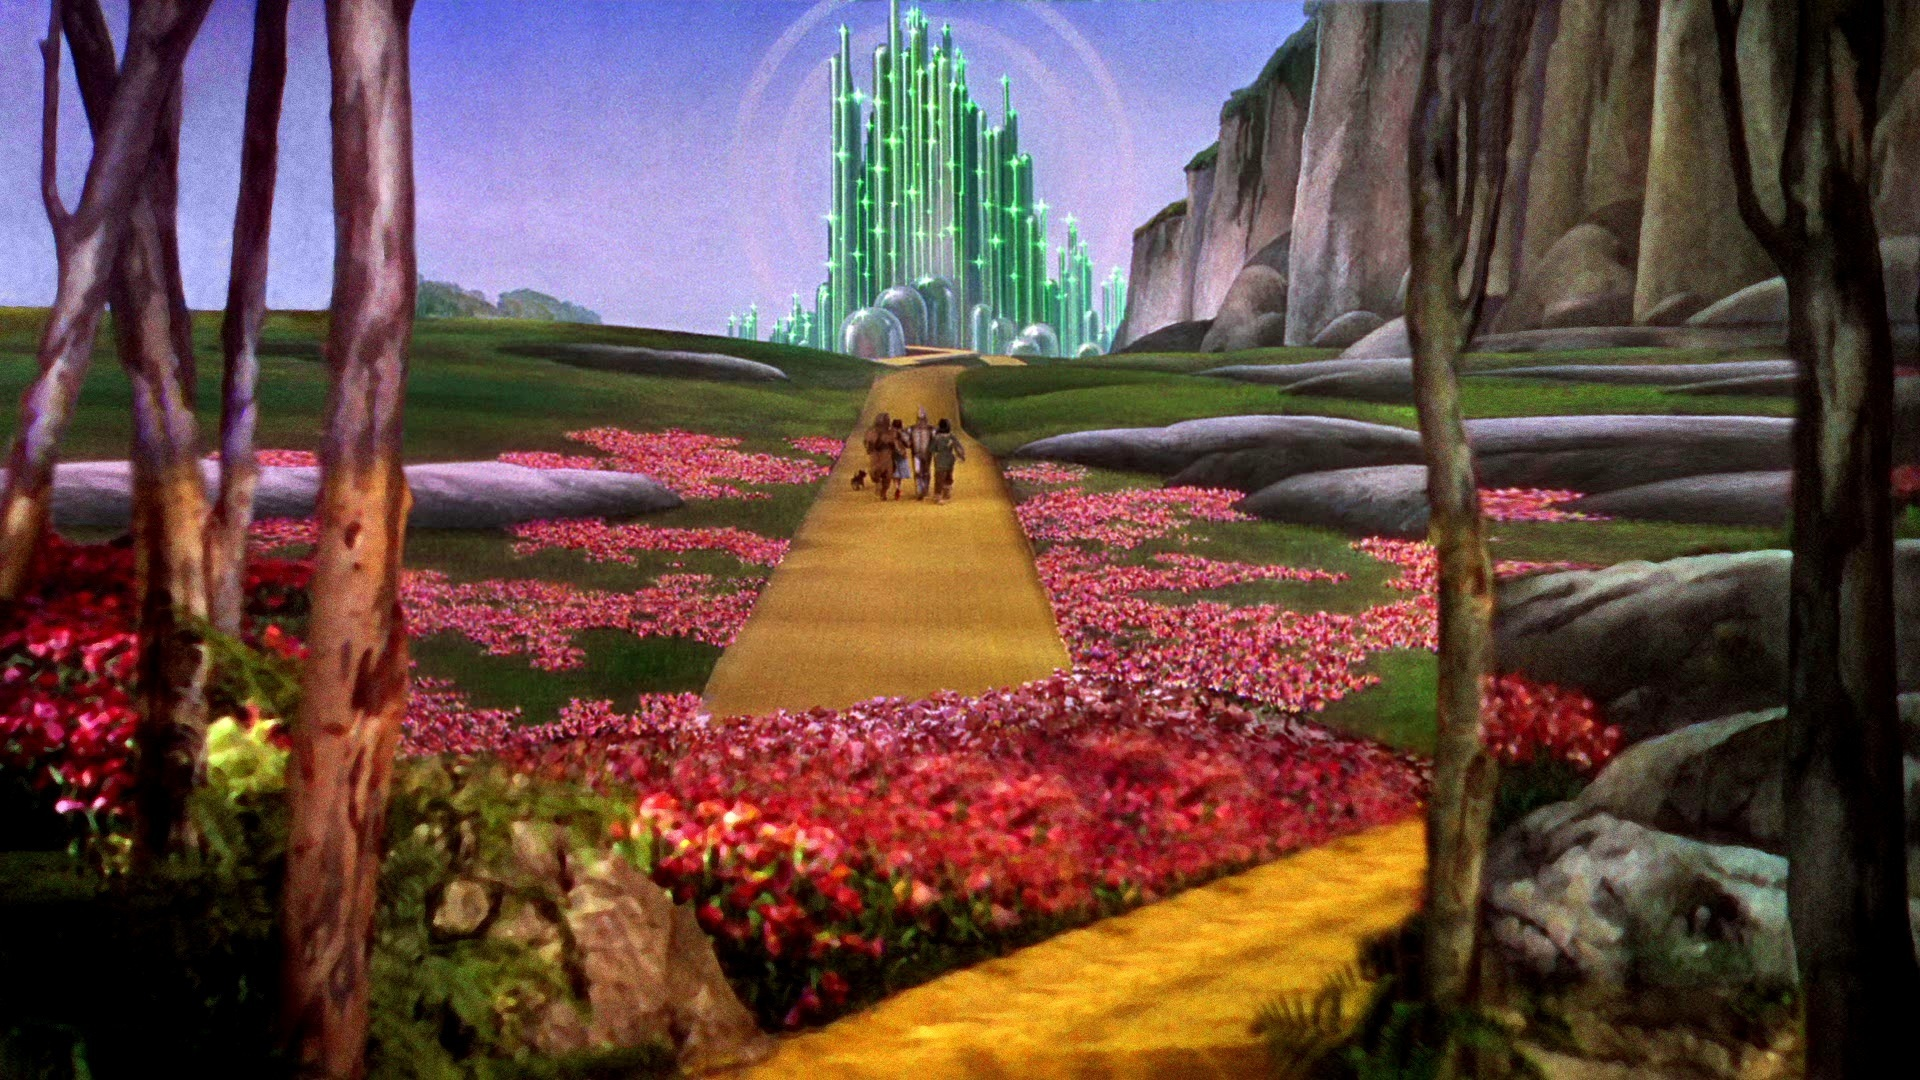 The Wizard of Oz Screening